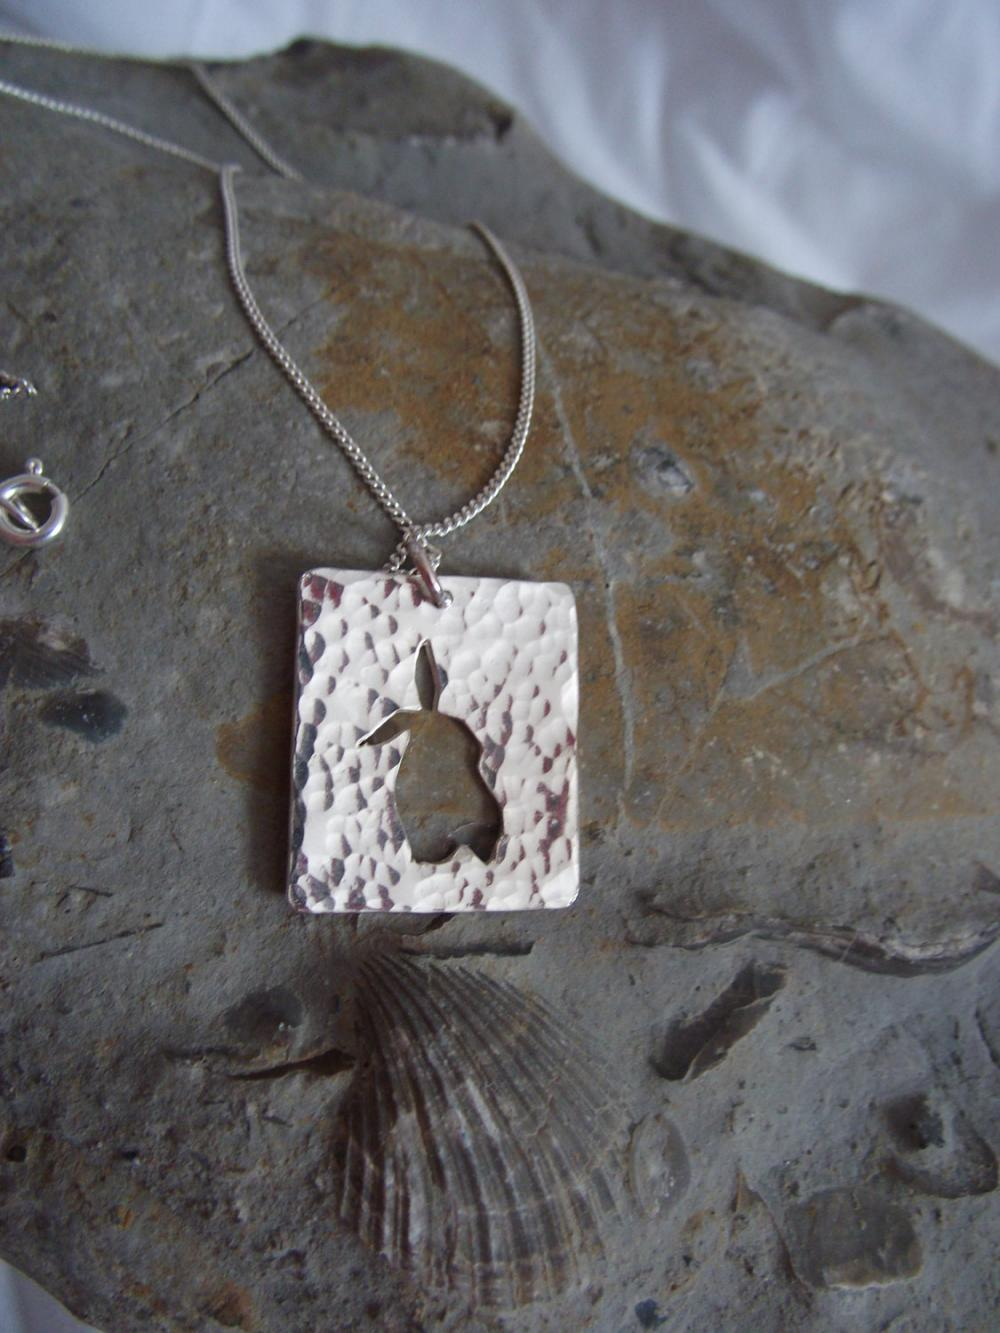 Silver rabbit pendant : A Curious bunny is listening to the world around her, on a background of hammered sterling silver.